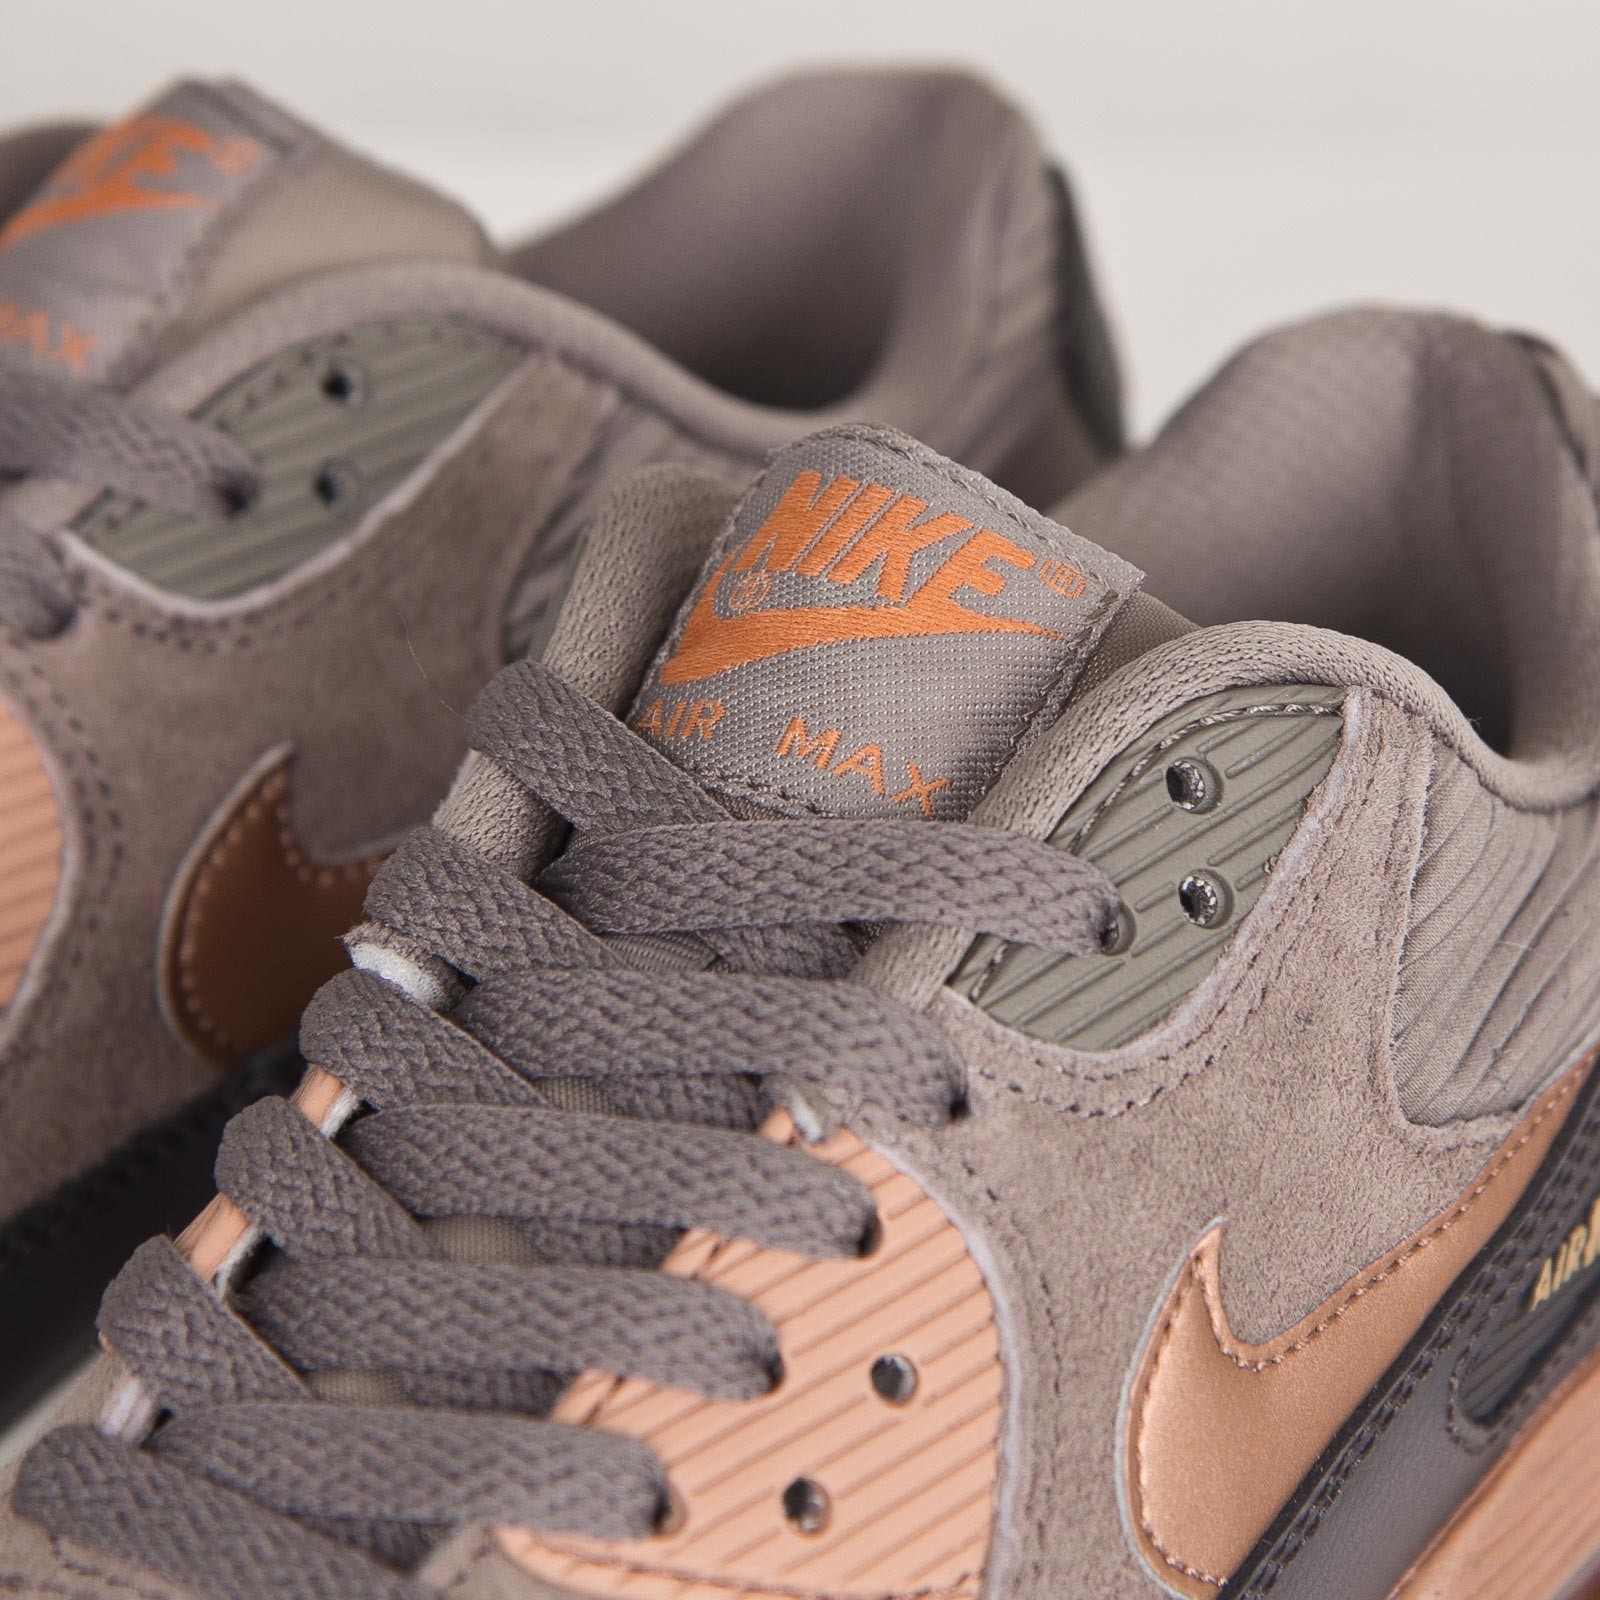 e746e003ec60 Nike Wmns Air Max 90 Leather - 768887-201 - Sneakersnstuff ...